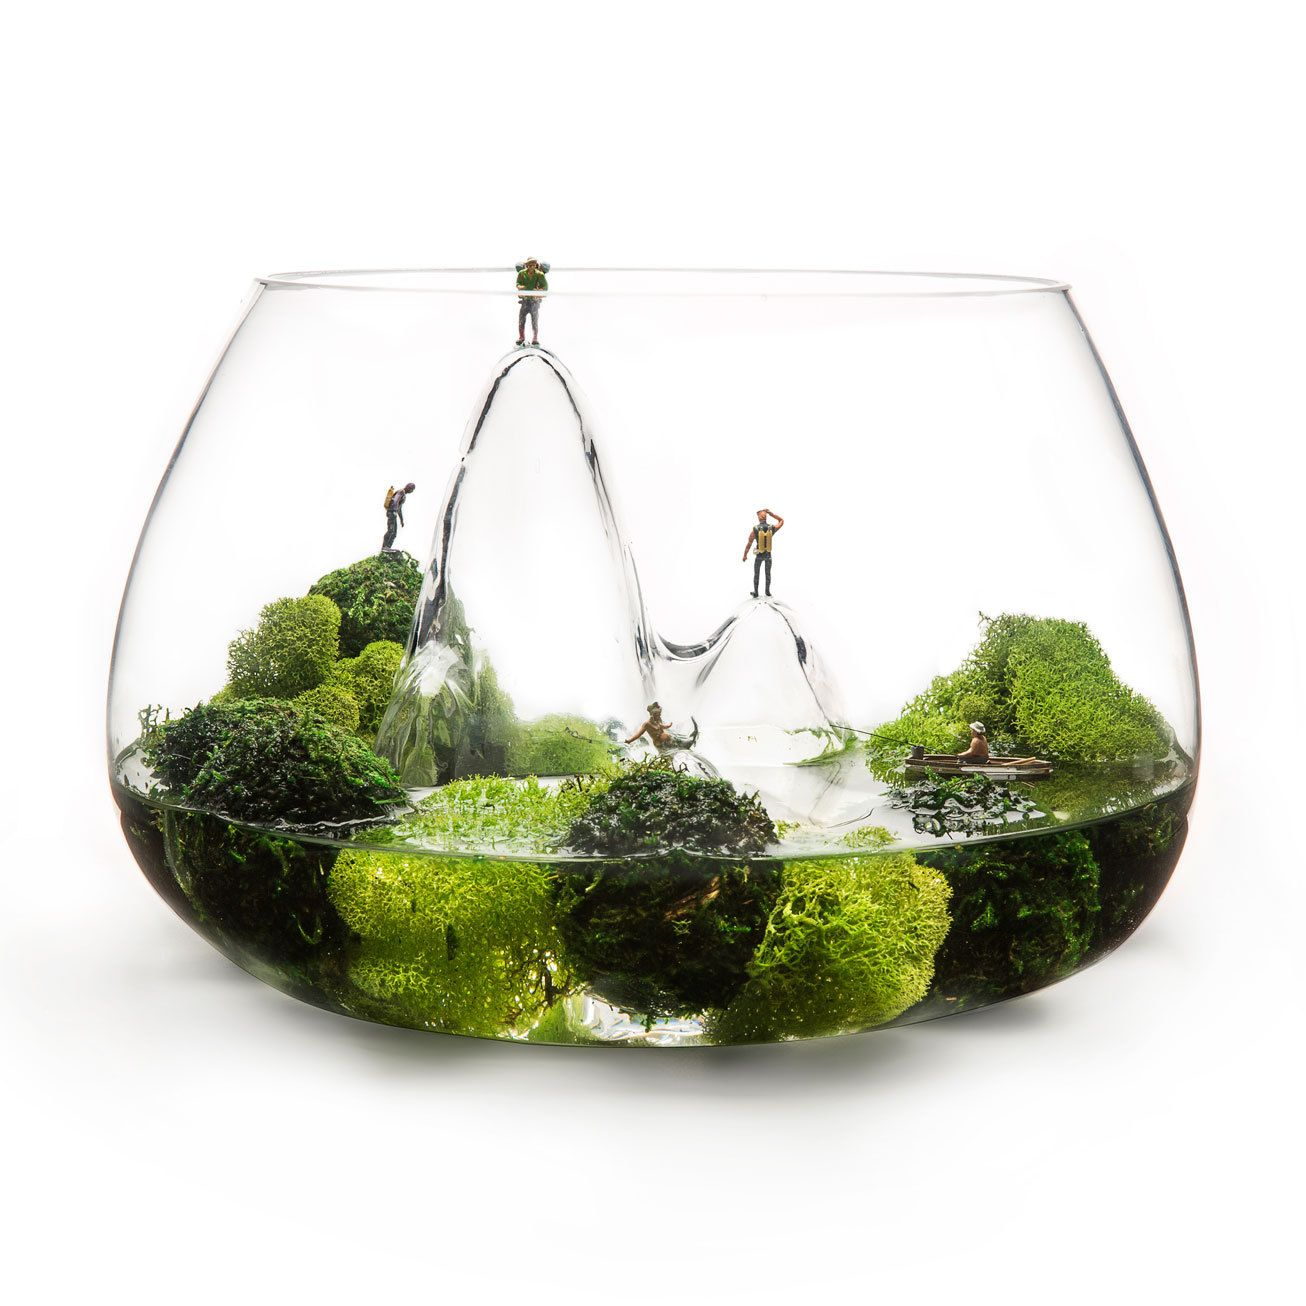 Glasscape fishbowl by aruliden lo quiero pinterest fishbowl